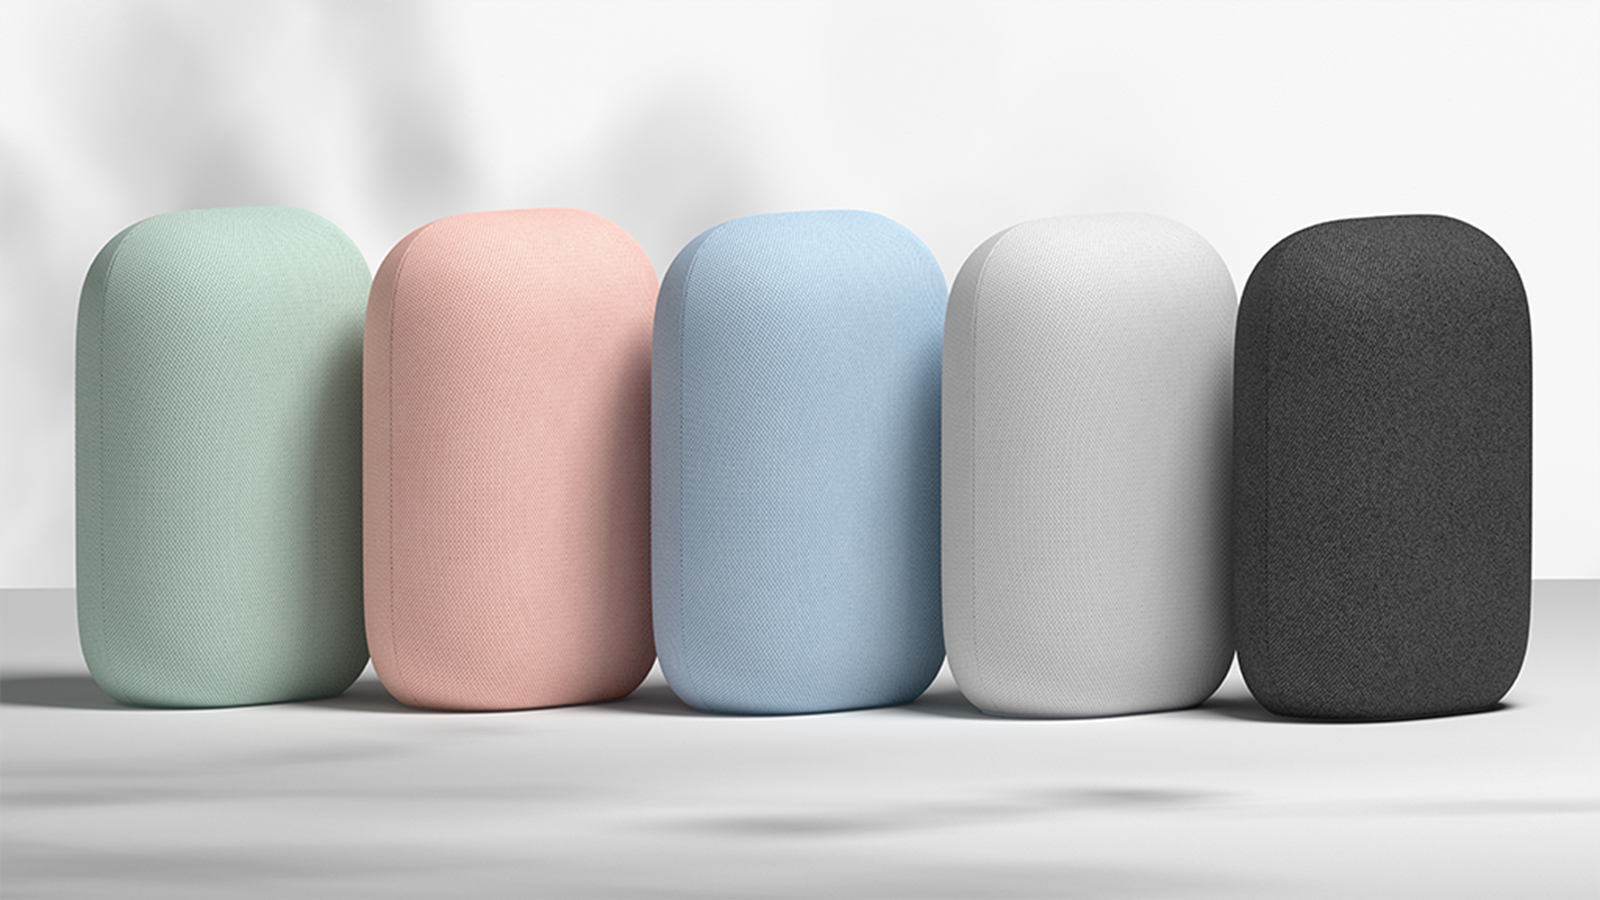 A set of Nest Audio speakers in Sage, Sand, Sky, Charcoal, and Chalk colors.